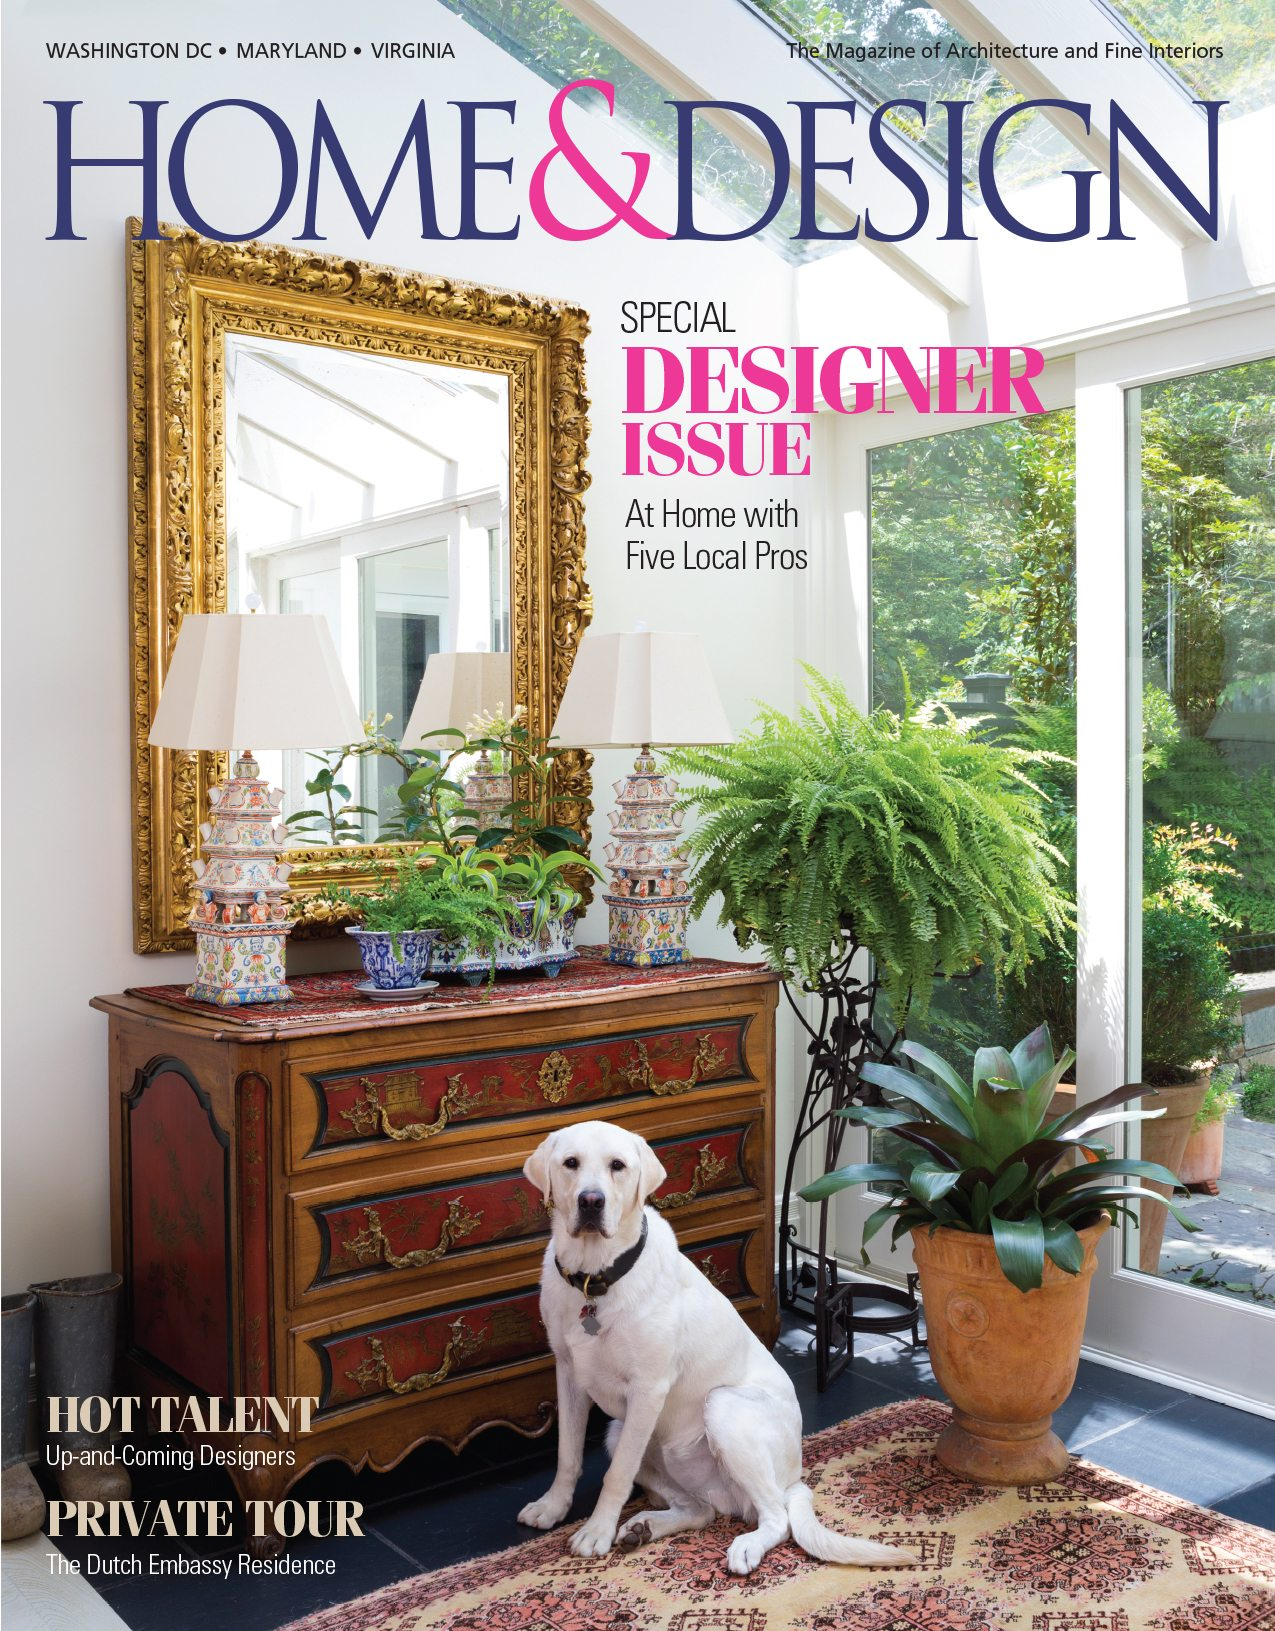 Paul Miller named hot up and coming talent by Home & Design Magazine. Local Winchester, VA homeowner and University President has large collection of global artifacts. Beautifully designed home with lots of personality.